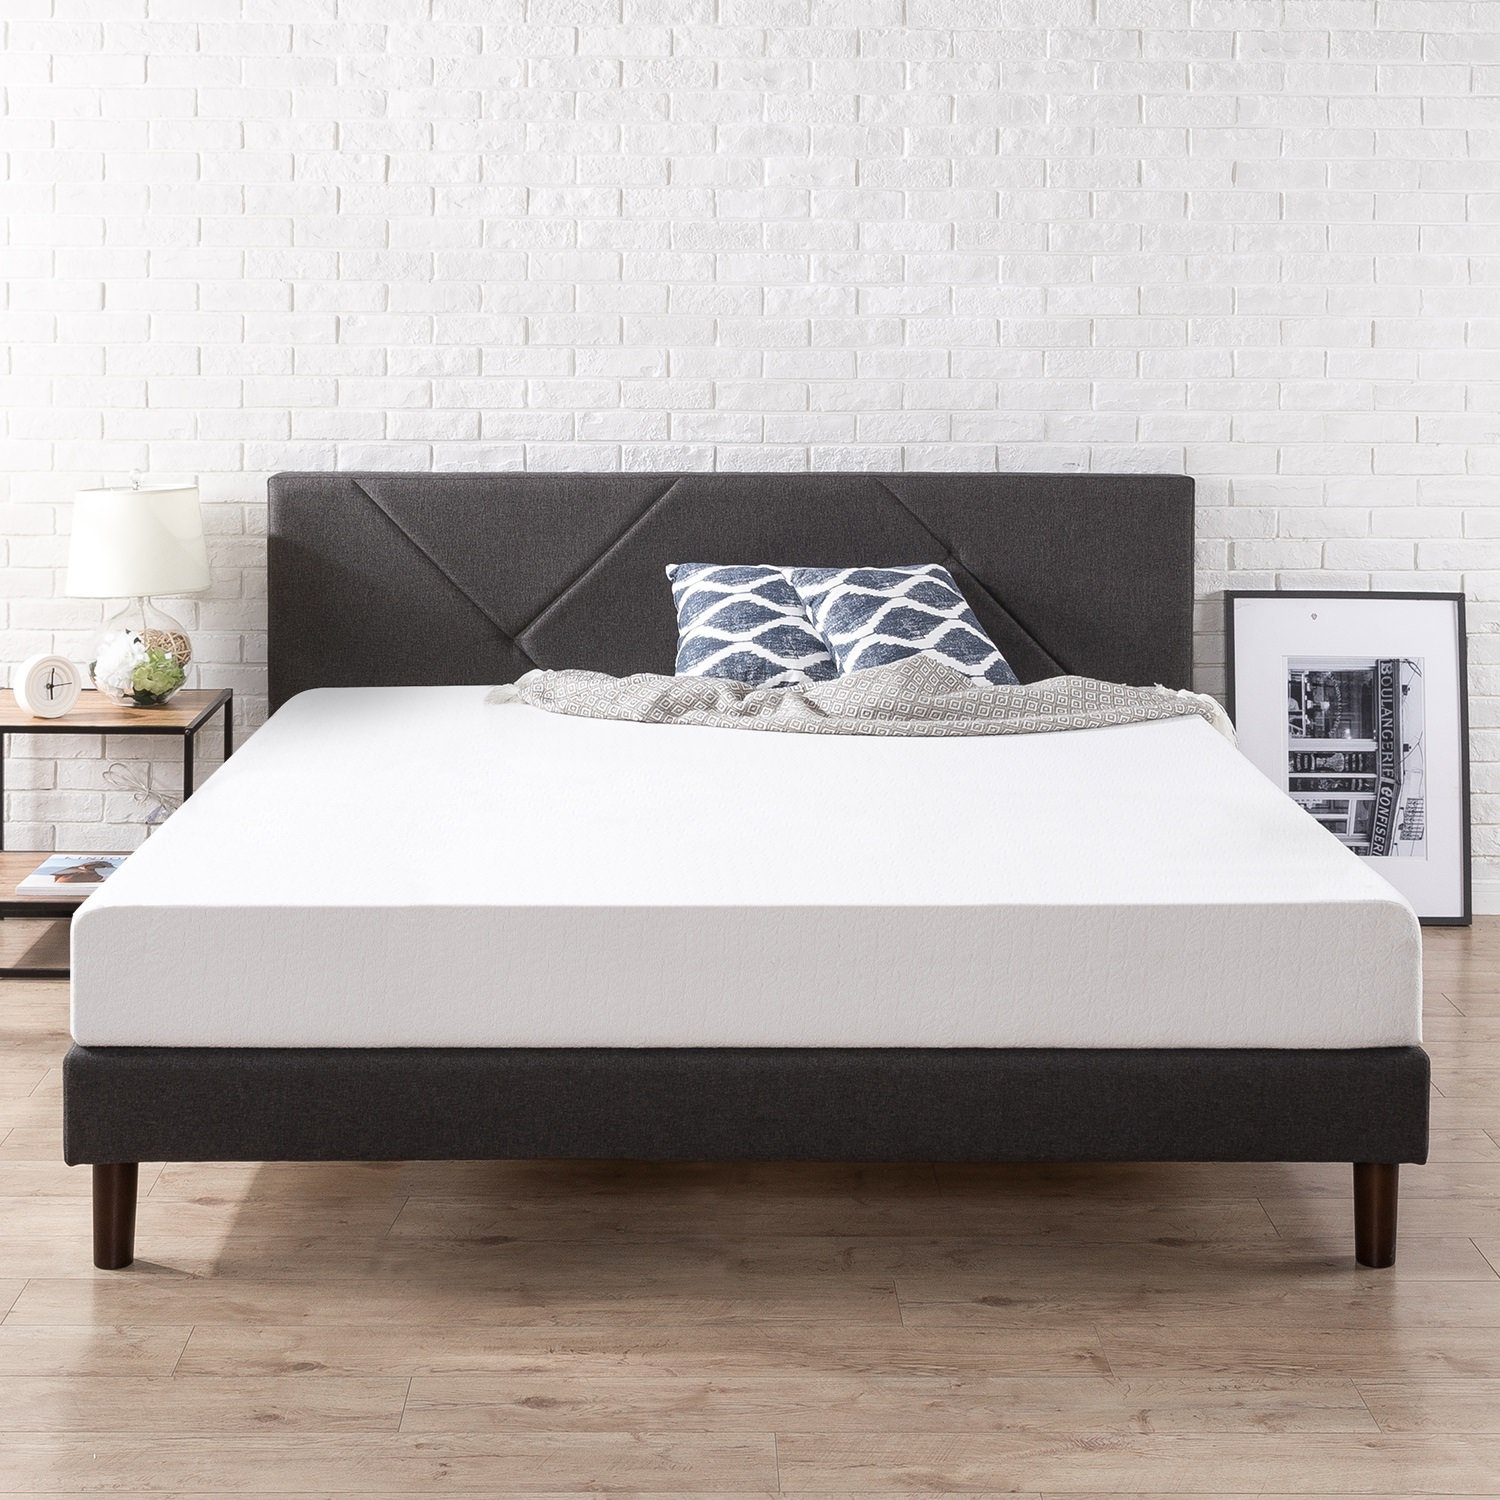 Zinus Upholstered Geometric Paneled Platform Bed / Mattress Foundation / Easy Assembly / Strong Wood Slat Support, King